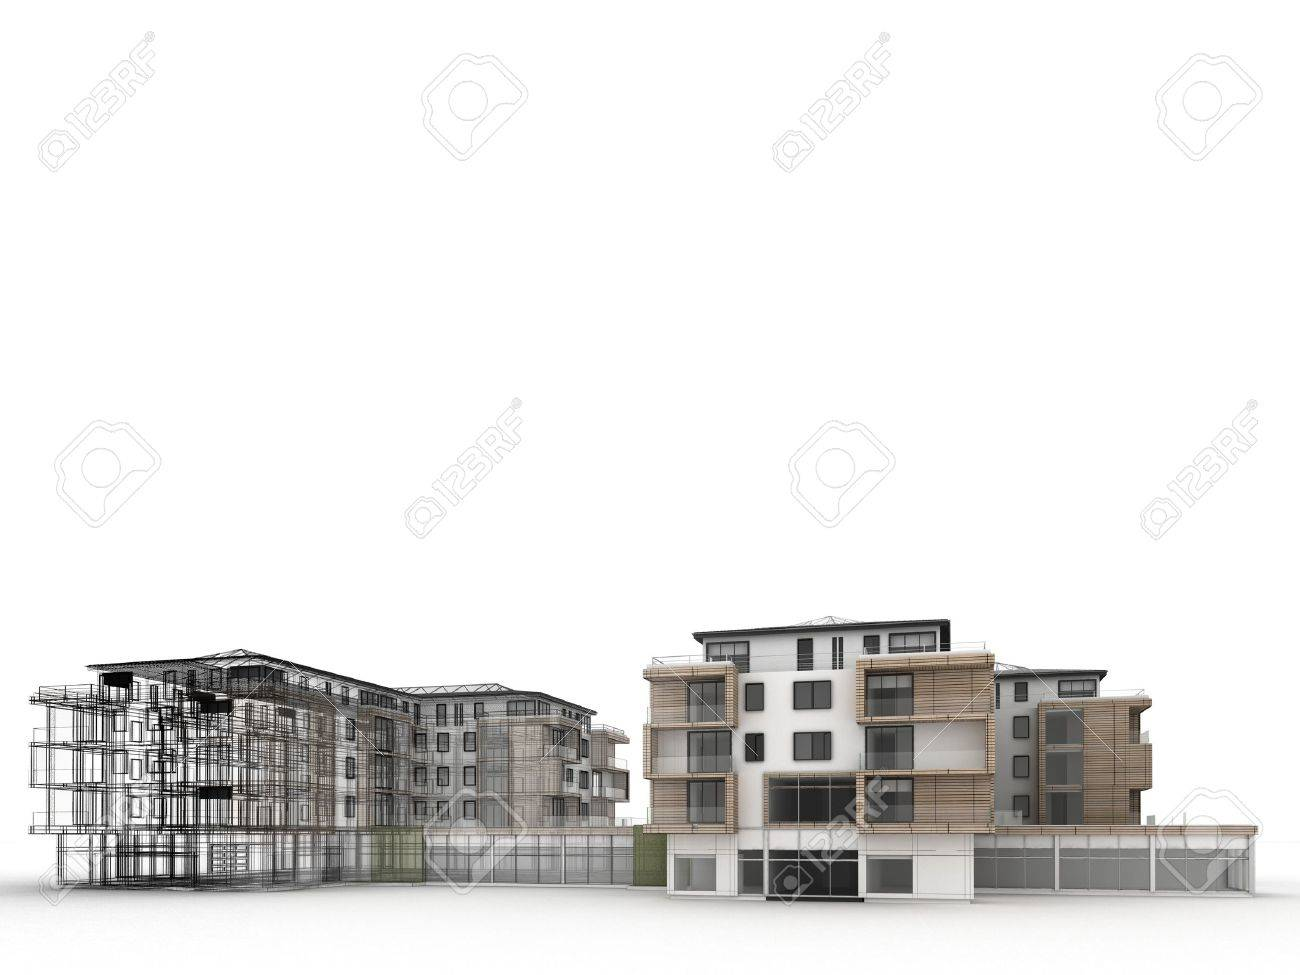 apartment building design progress, architecture visualization